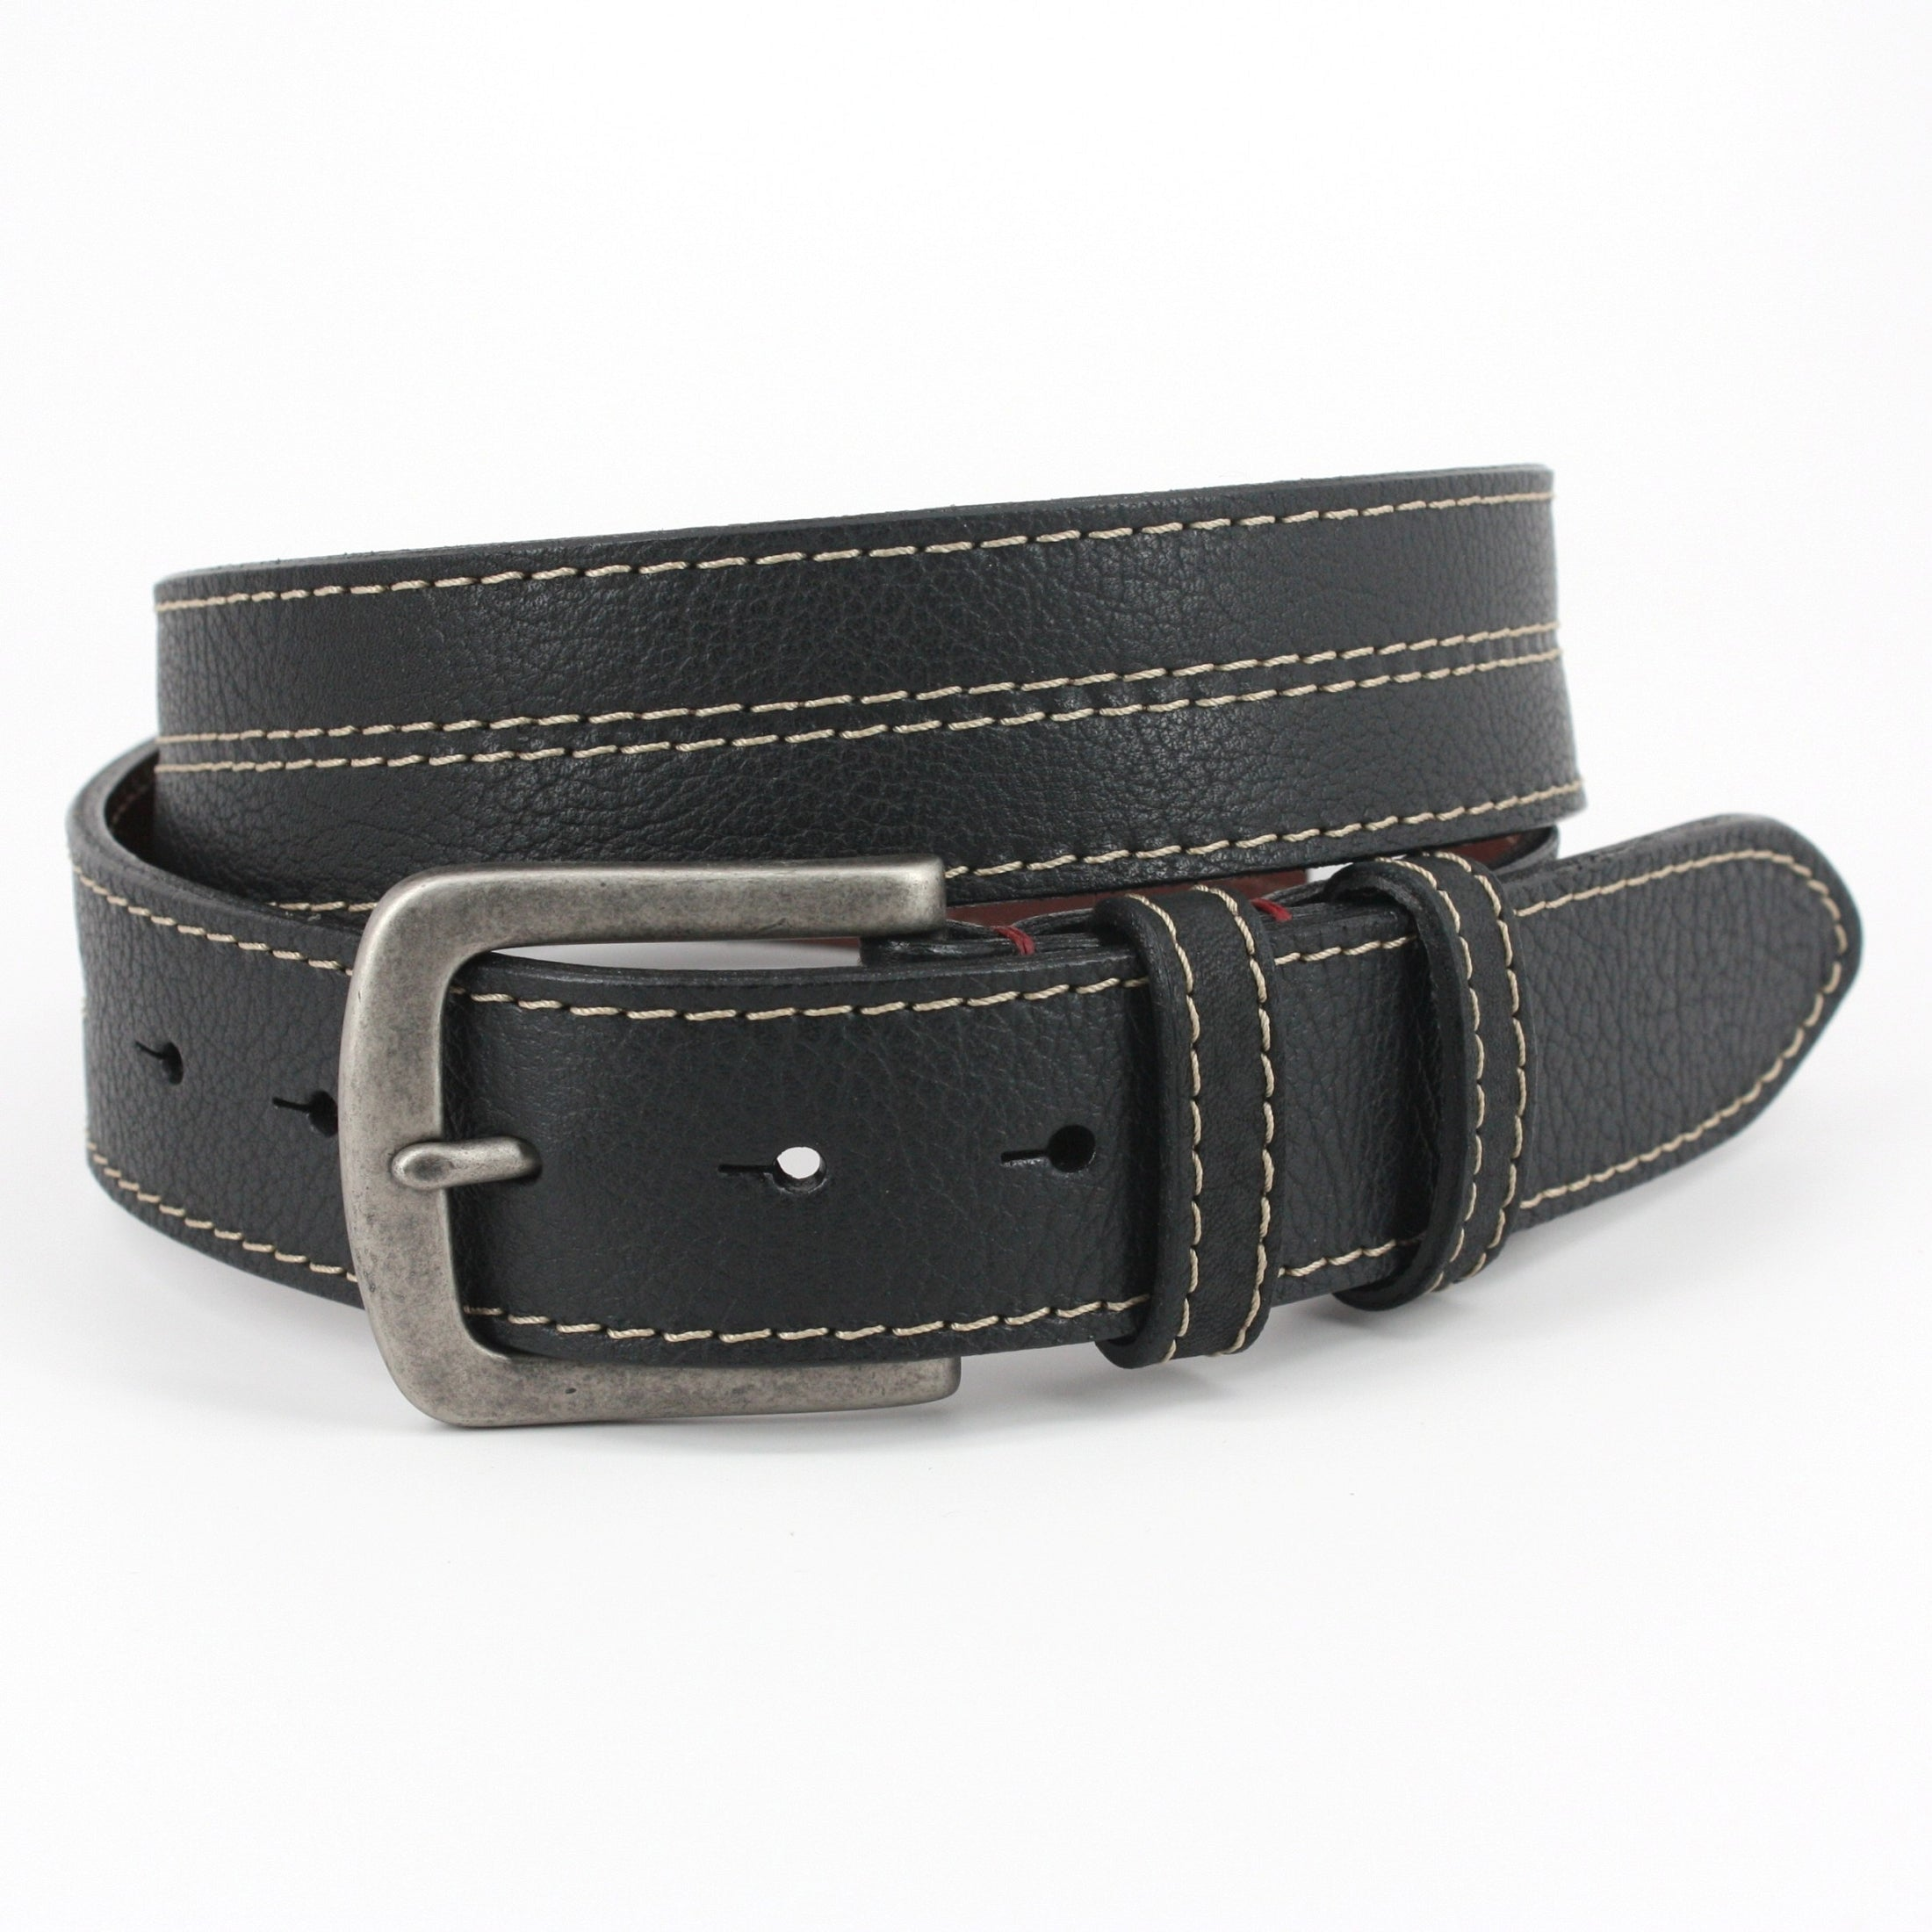 Oiled Shrunken Bison Leather Belt - Black,BELT,Gent Row, | GentRow.com